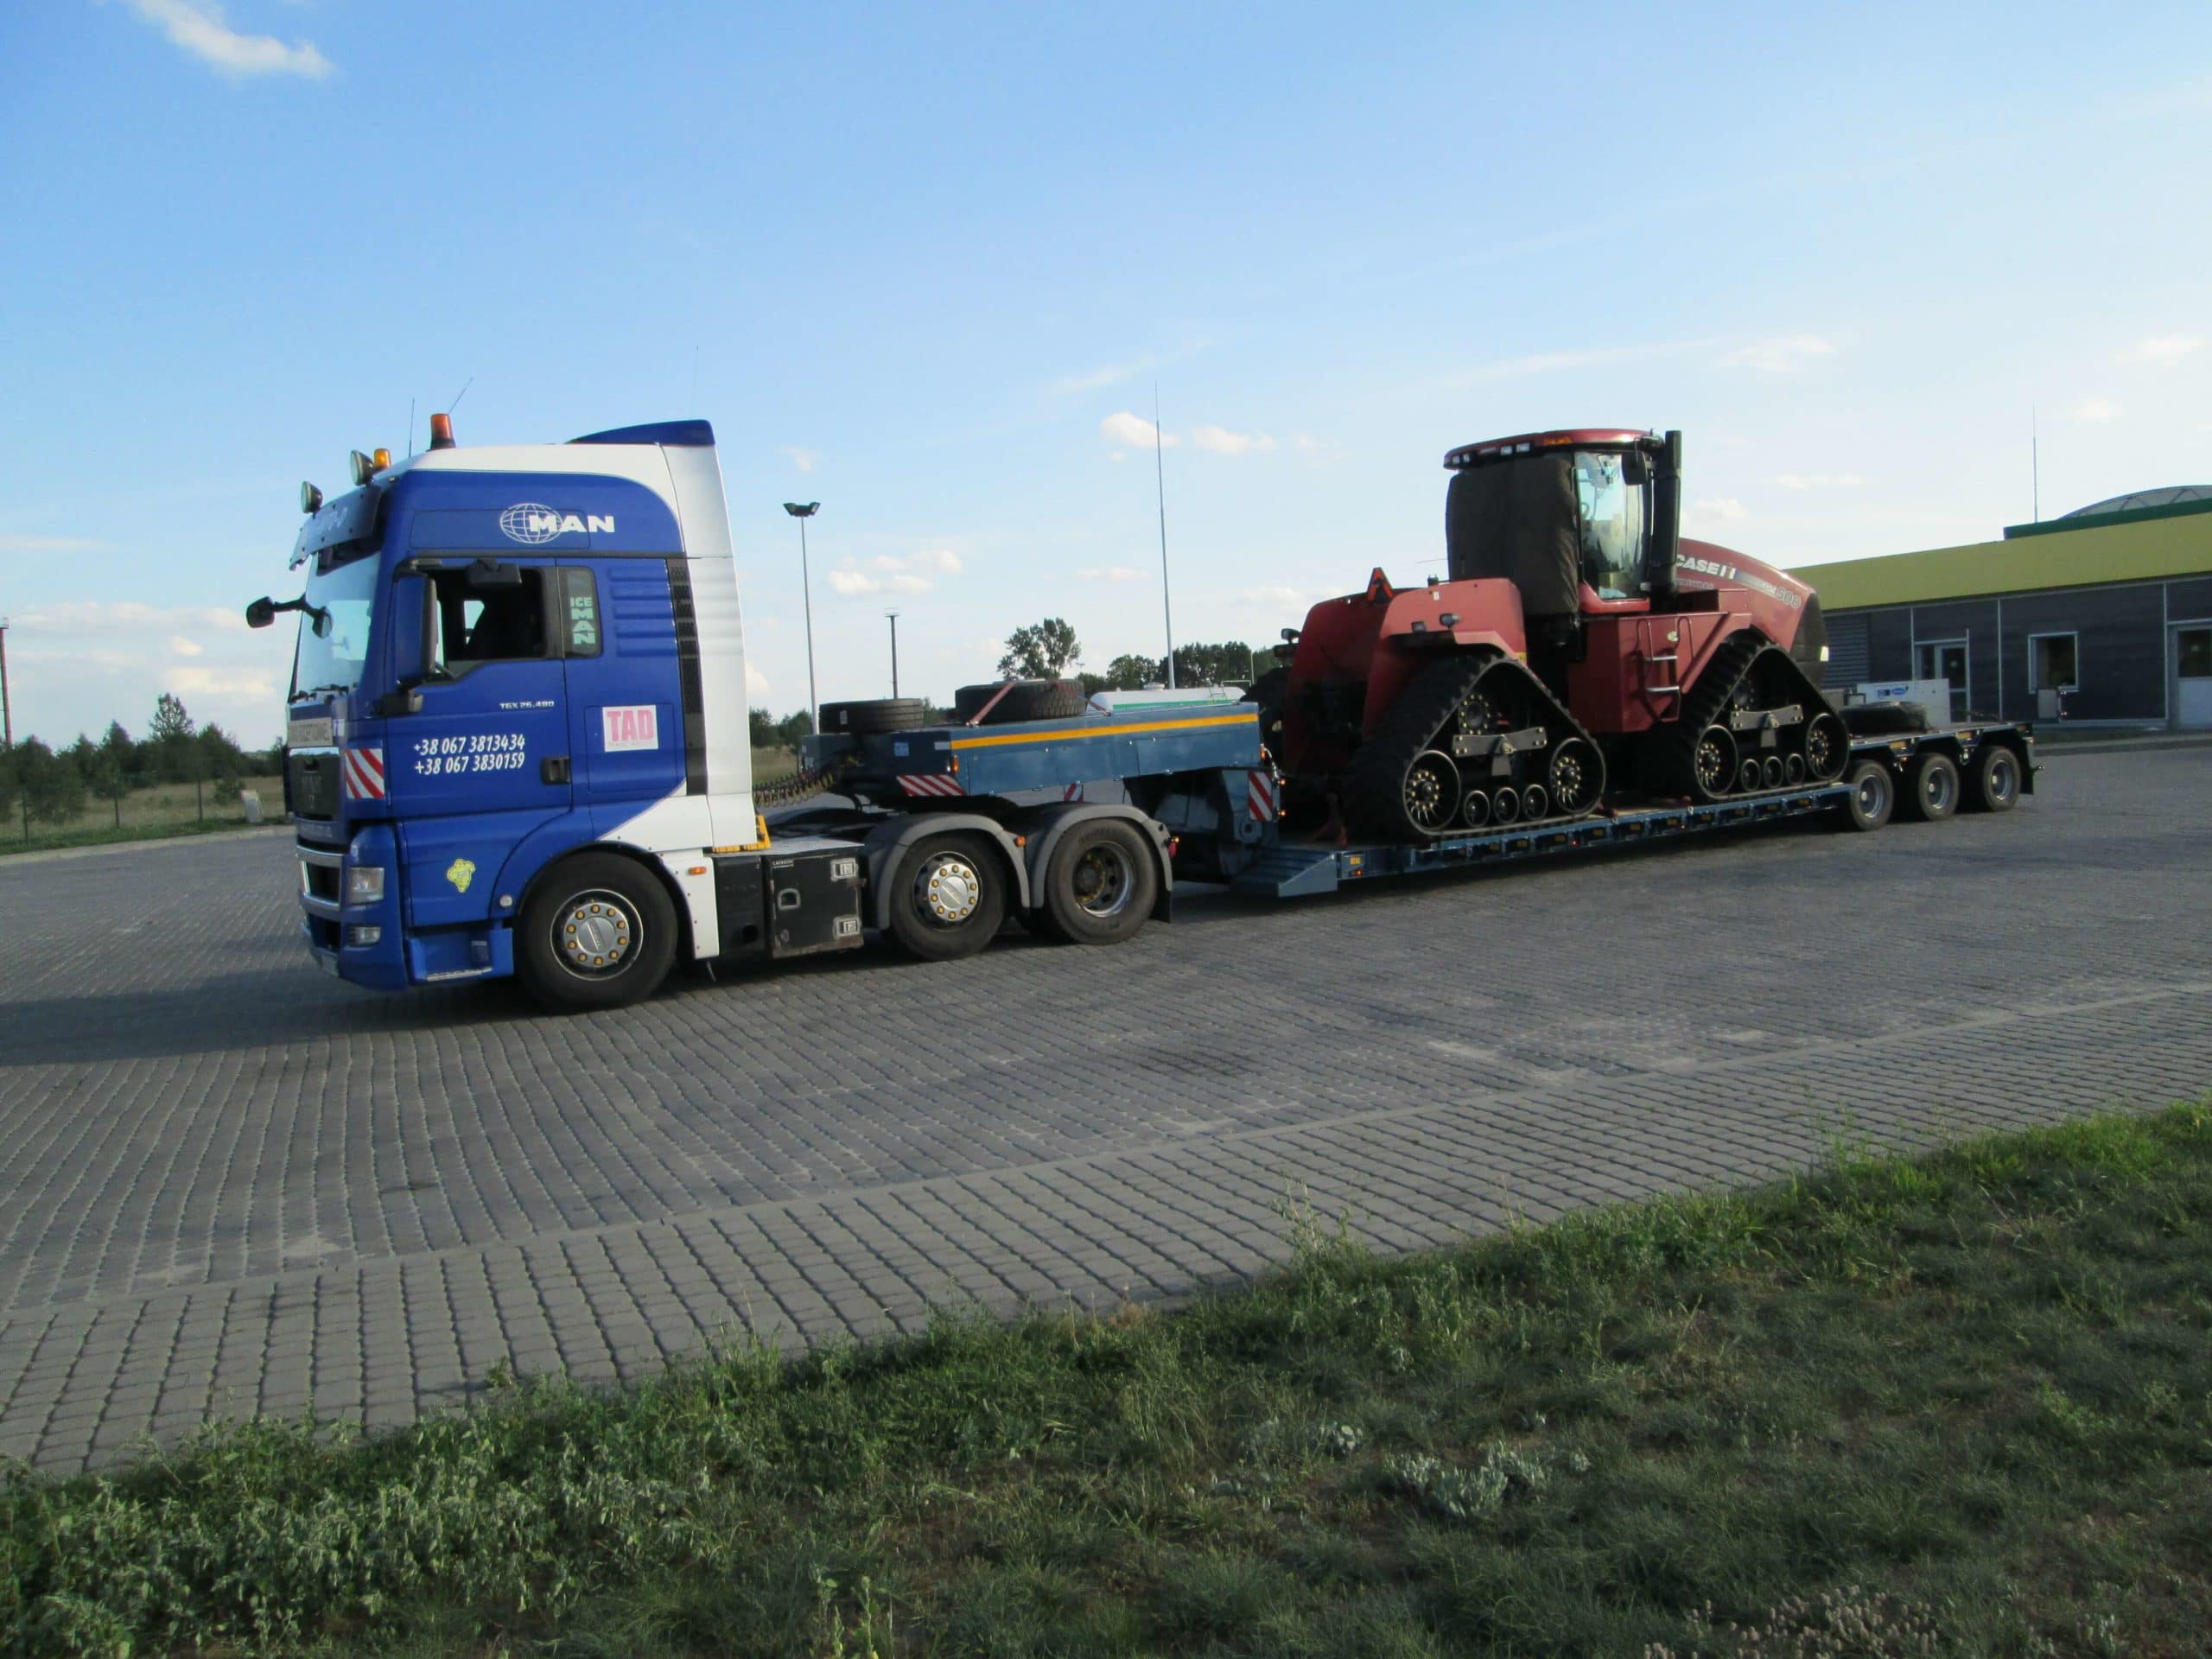 CASE Tracked Tractor Transport